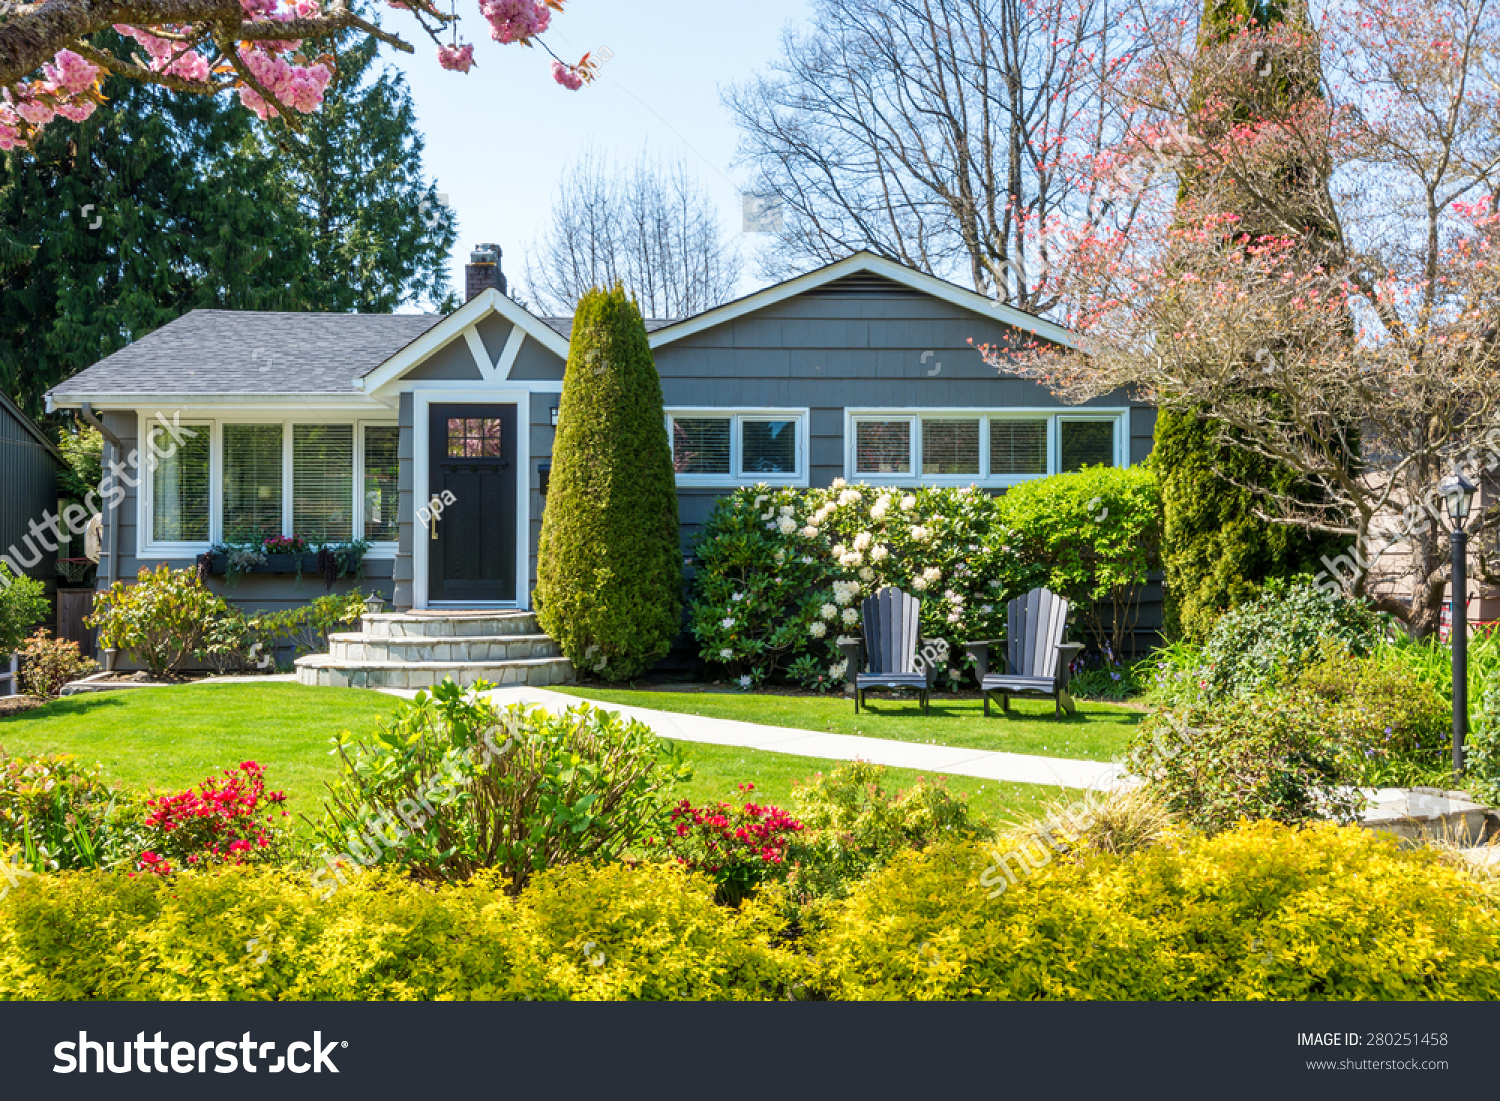 Cozy House Cozy House Beautiful Landscaping On Sunny Stock Photo 280251458